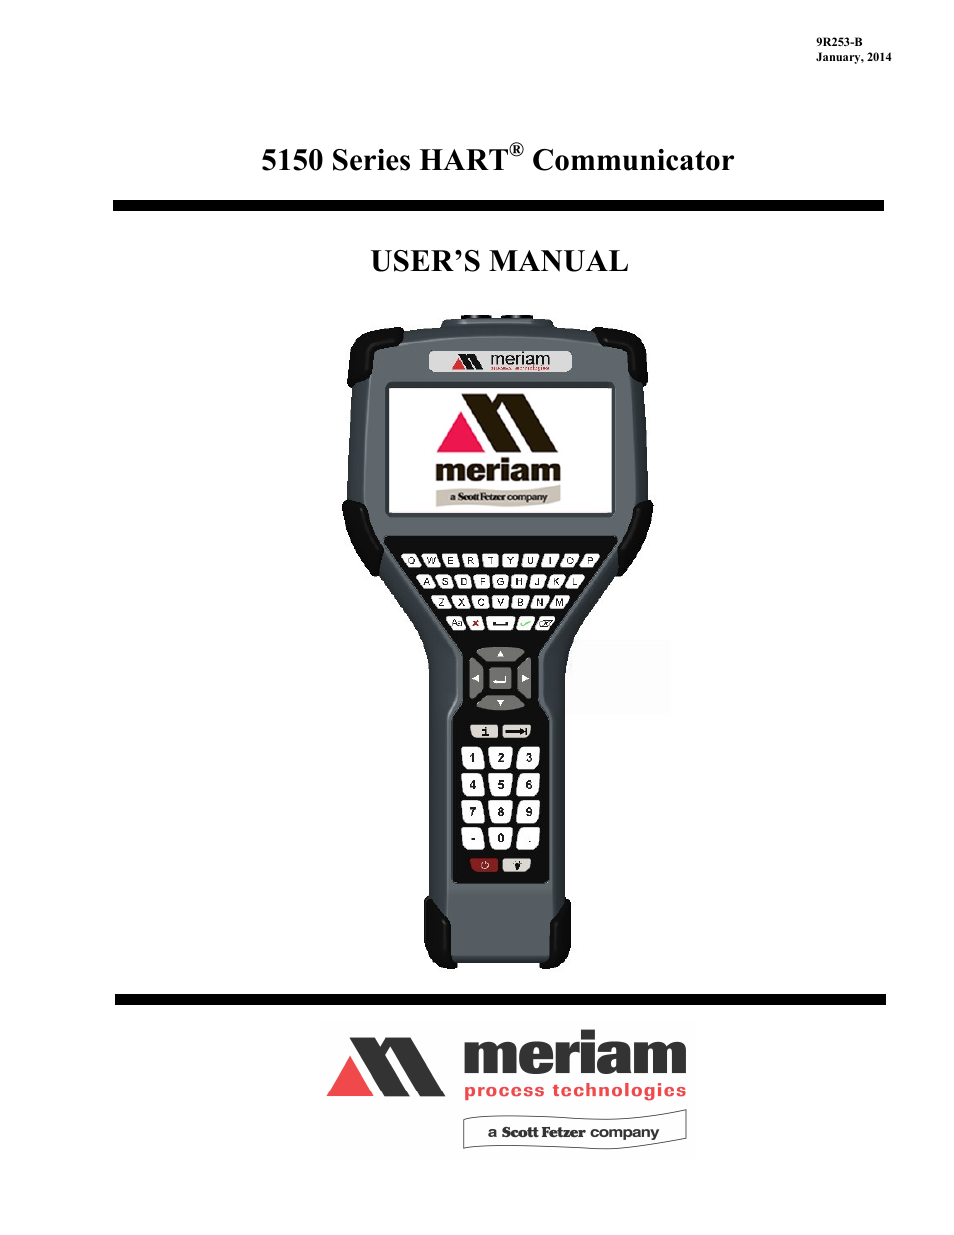 Meriam MFC5150 HART Communicator Manual User Manual | 45 pages